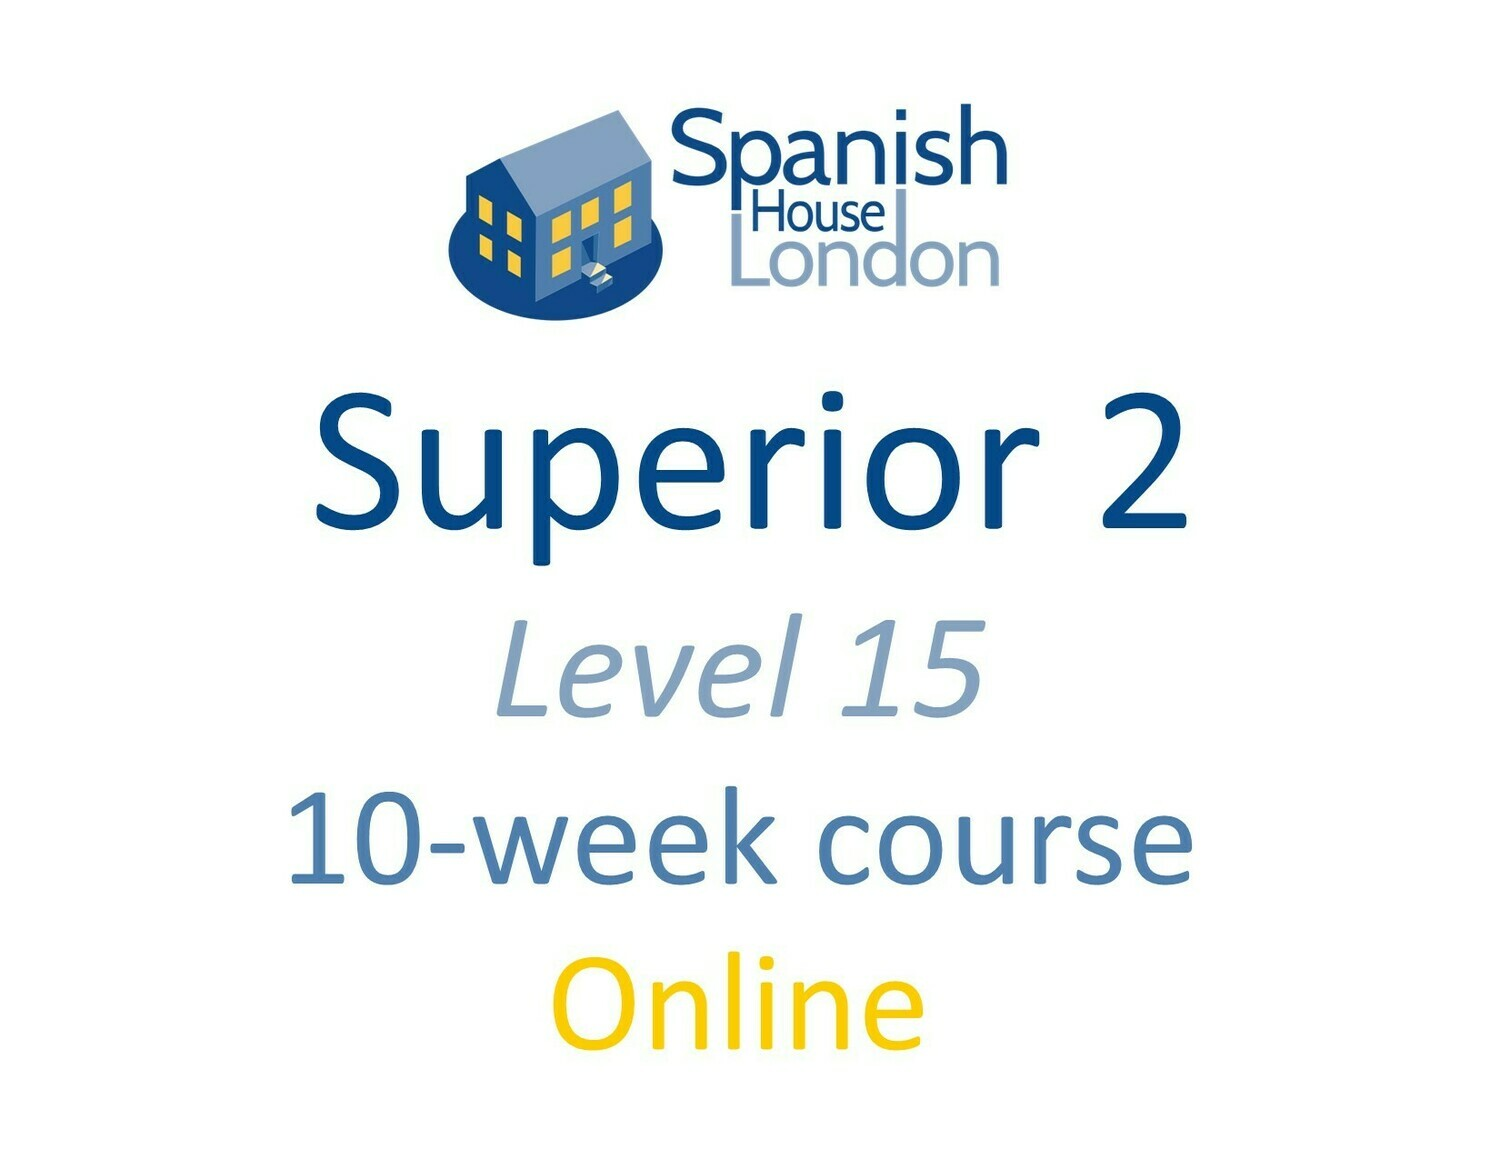 Superior 2 Course starting on 4th August at 6pm